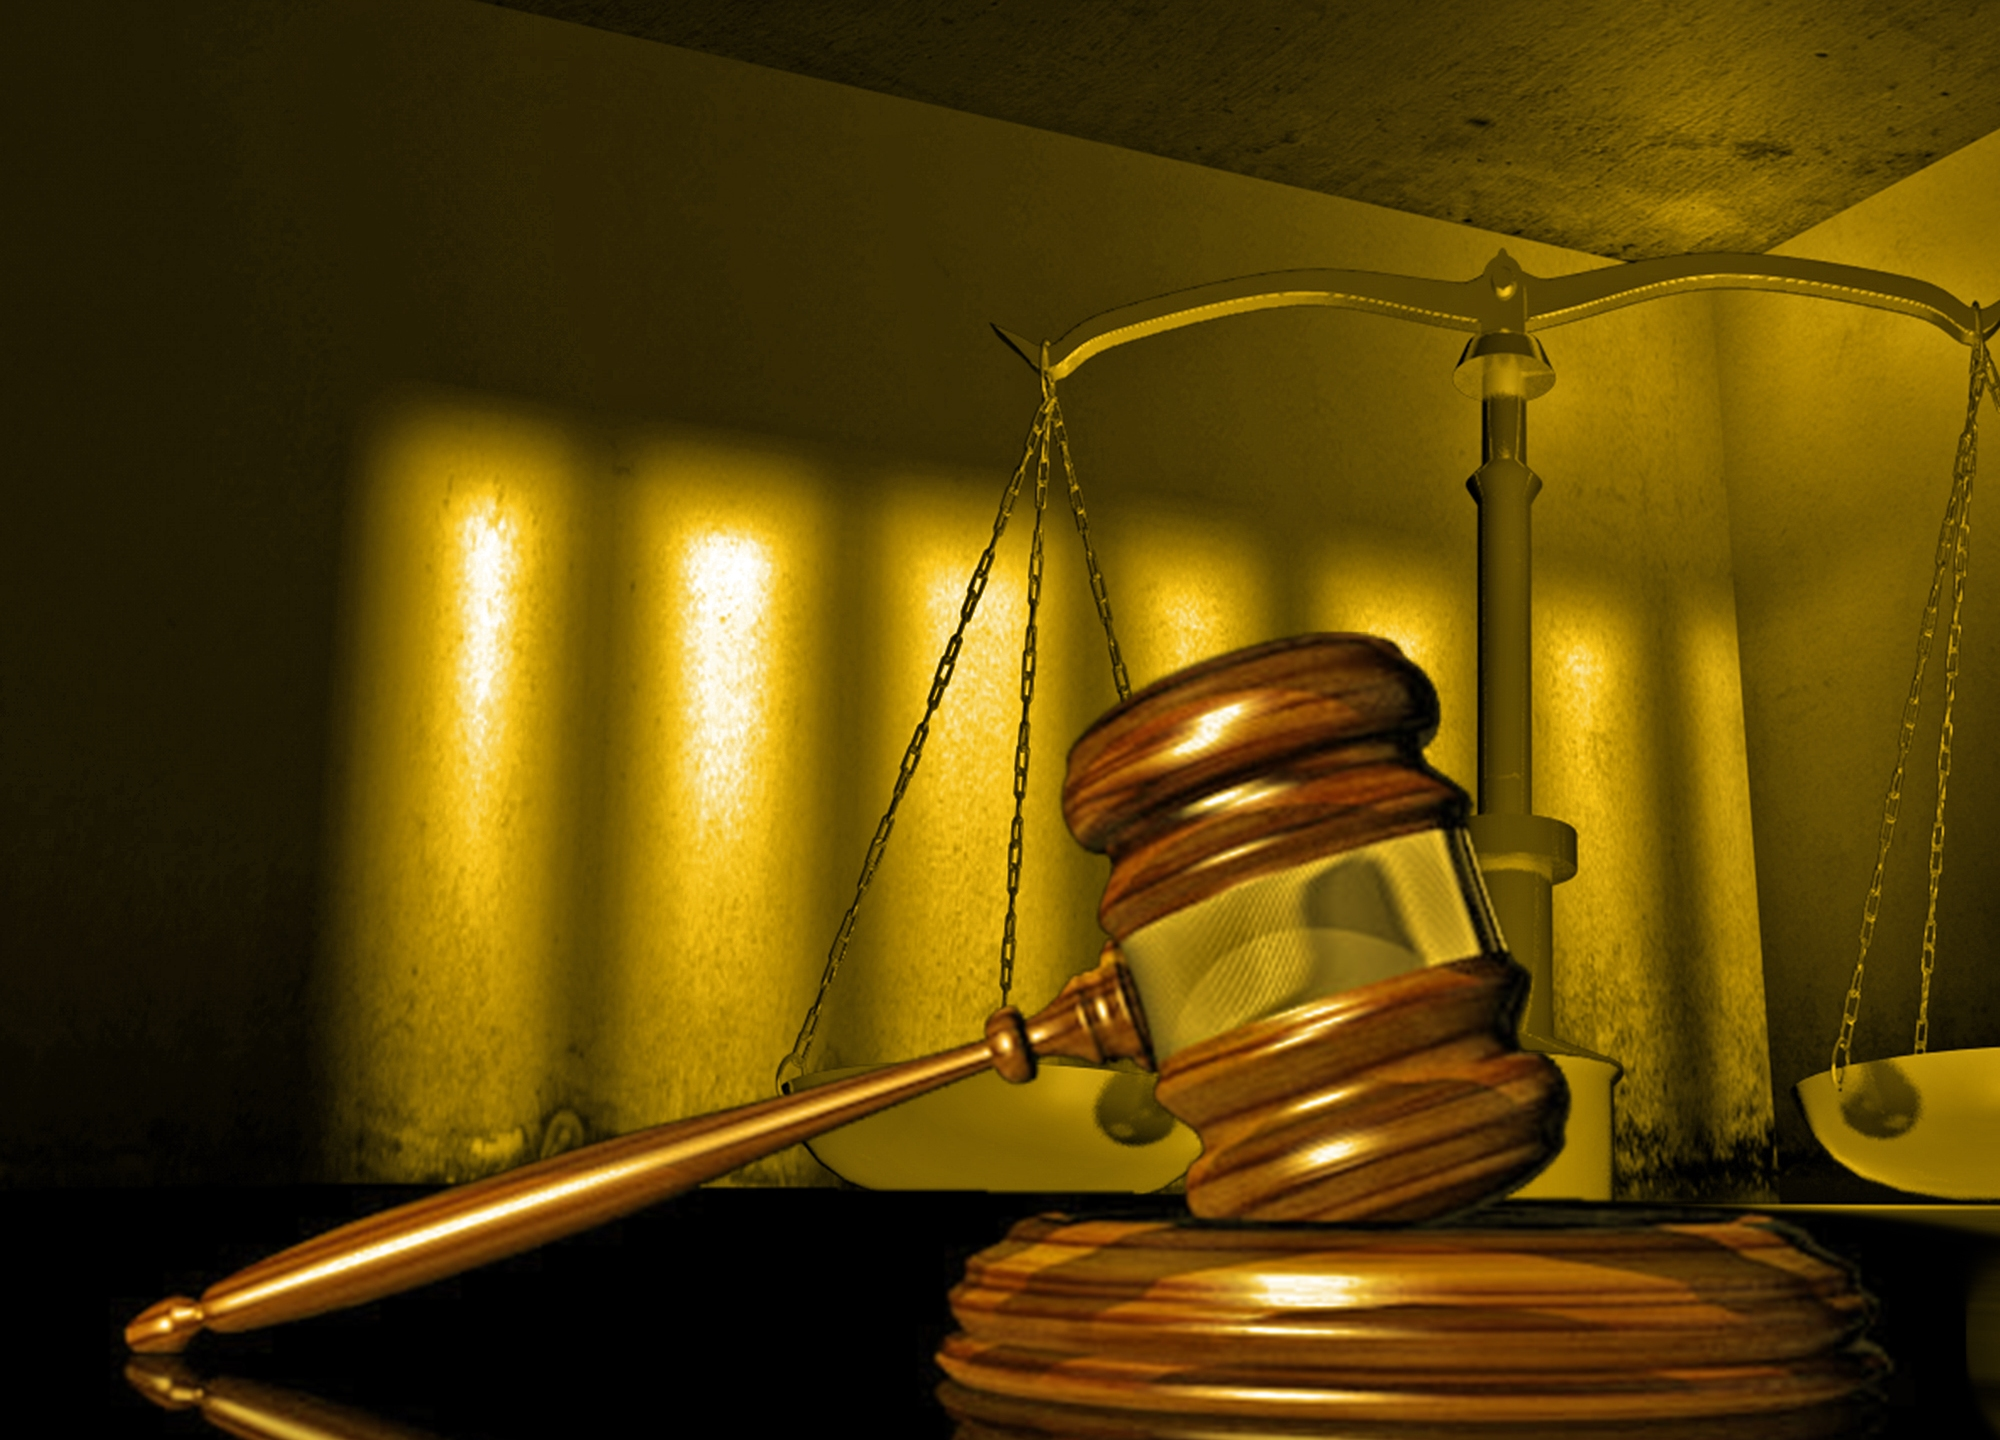 gavel & scales_1501800018925.jpg